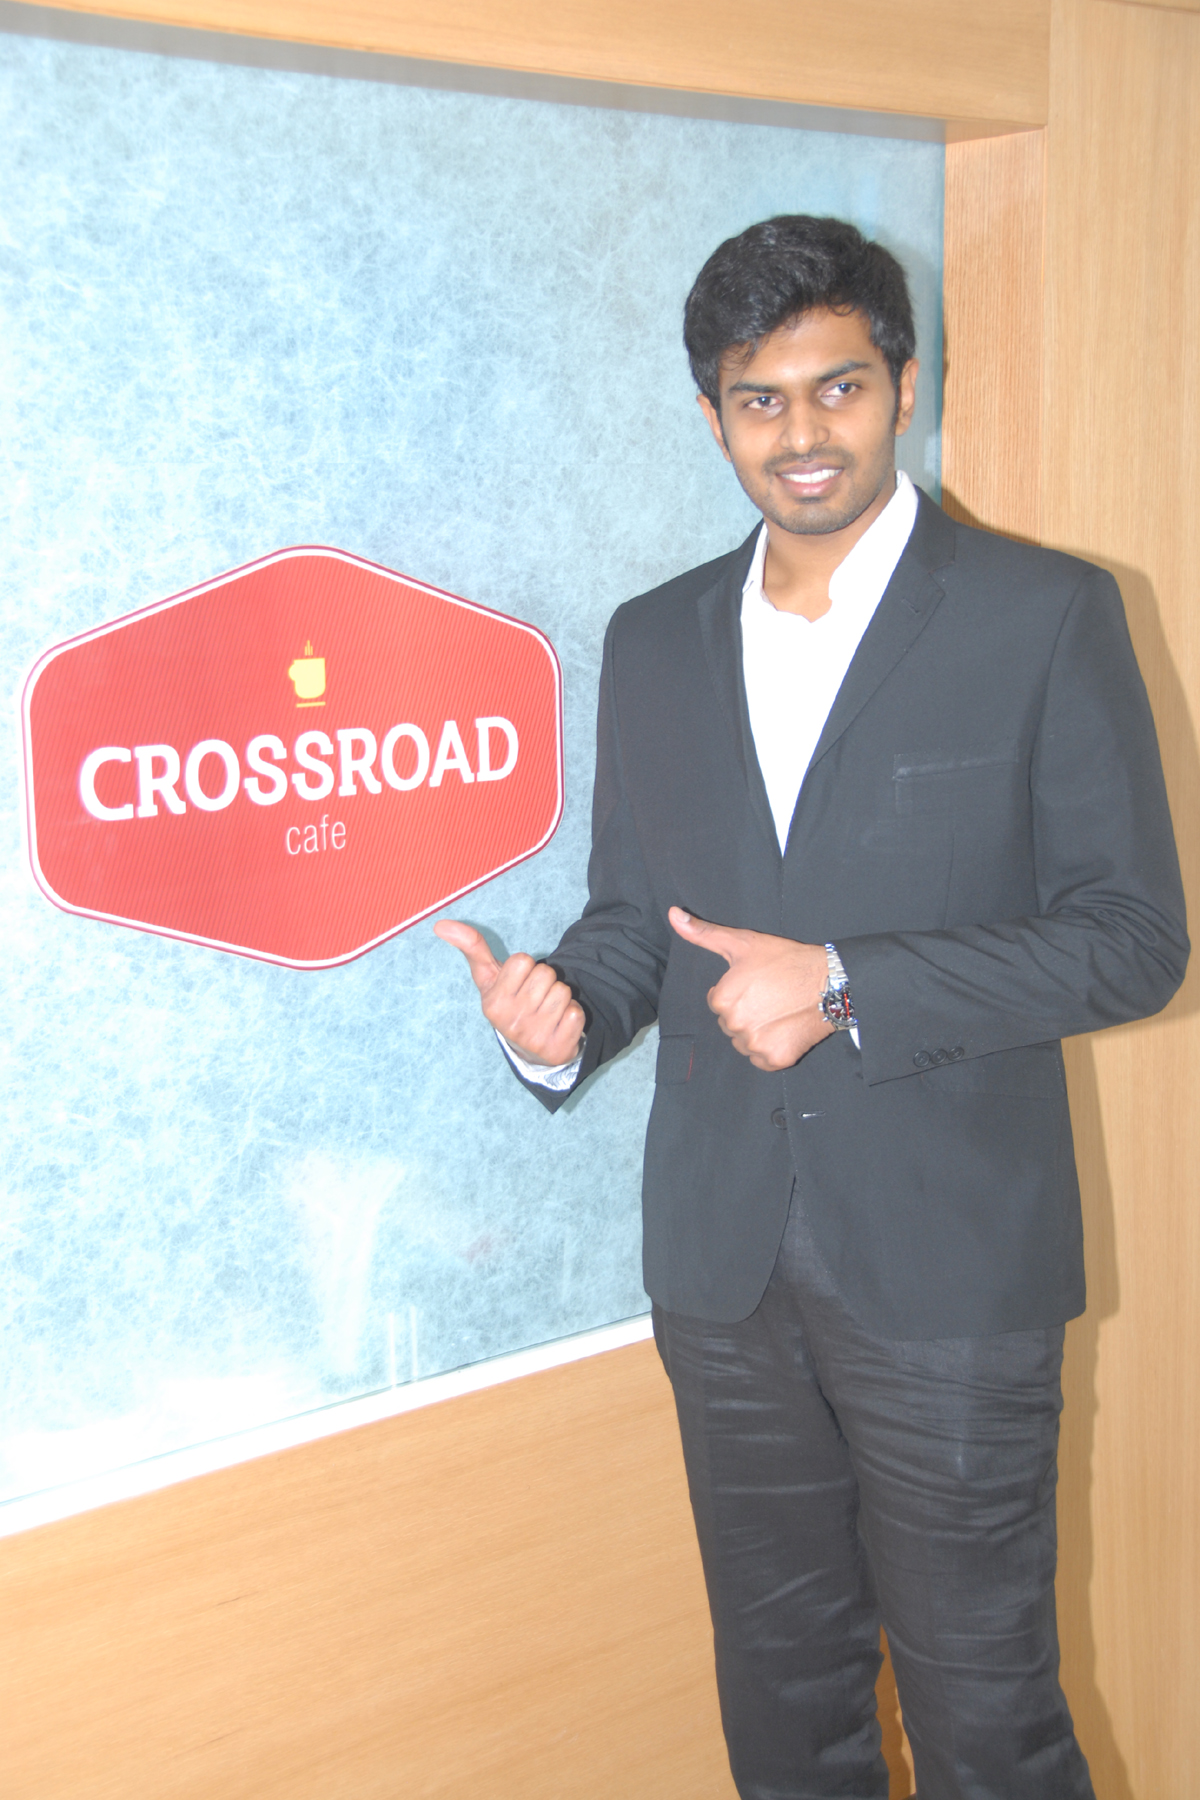 Mr. Karteesh Reddy Madgula - Executive Director at the launch of Crossroad Cafe